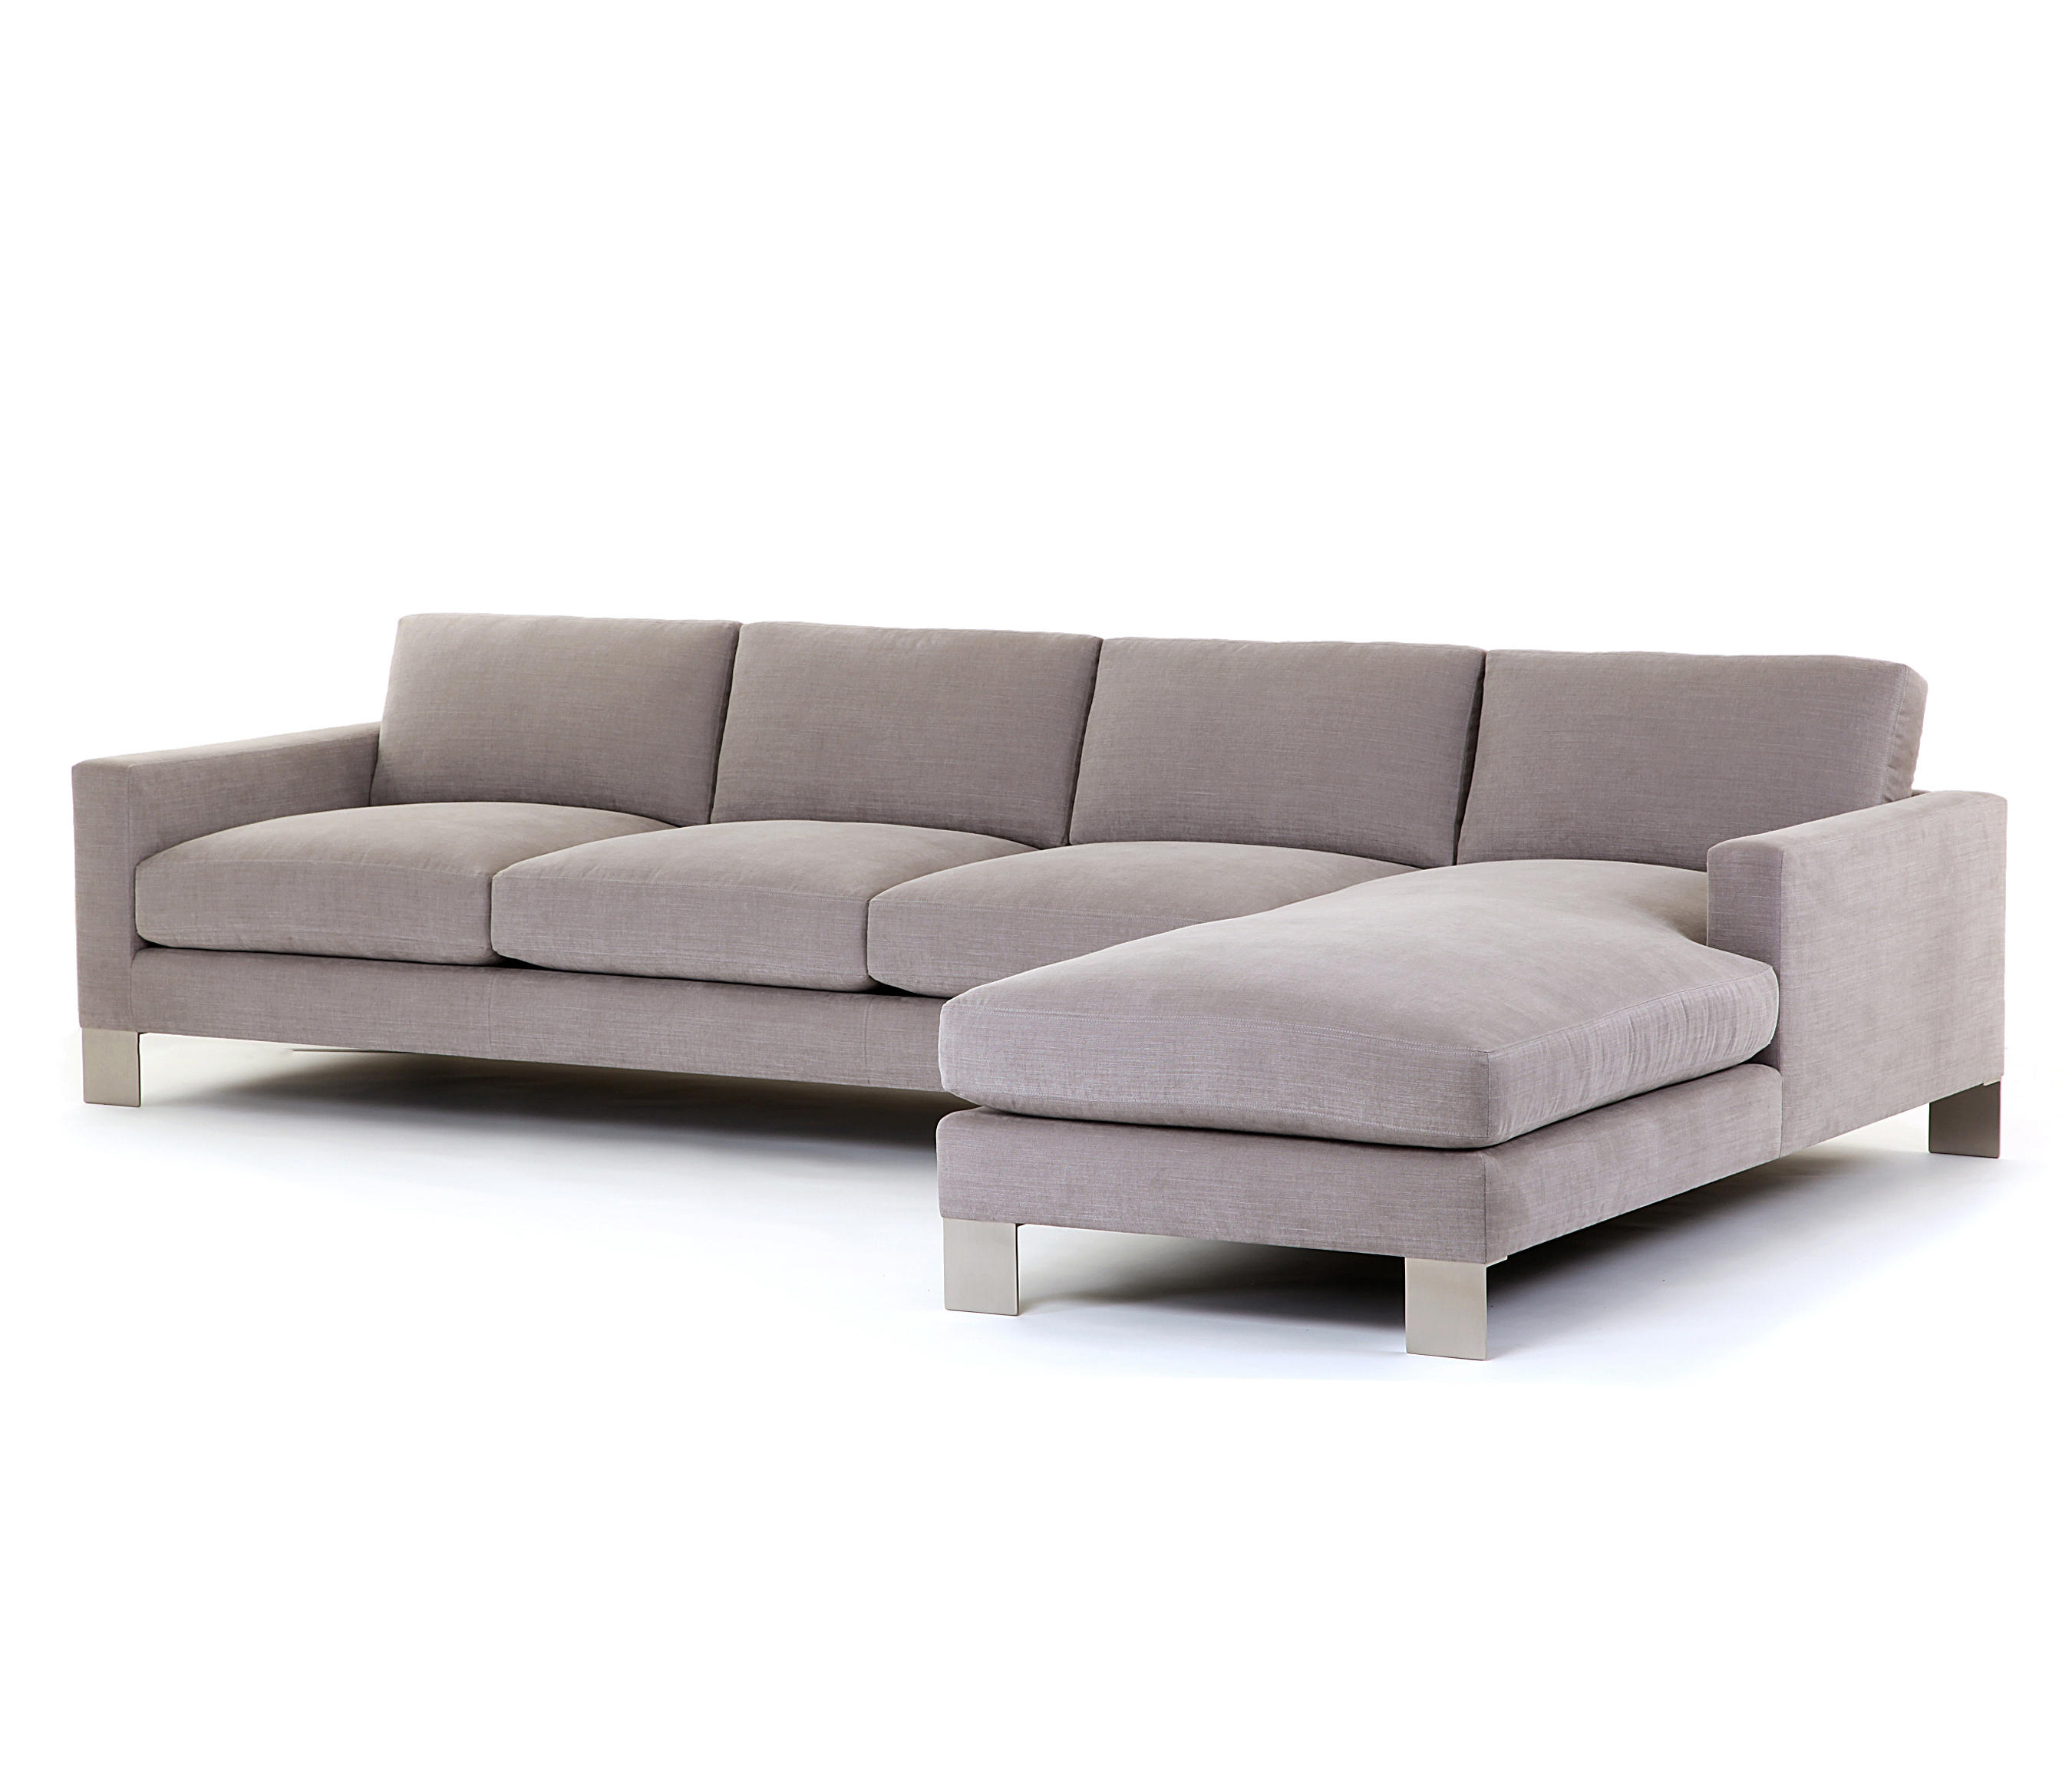 Pleasing Spring Street Sectional Sofas Von Naula Architonic Ncnpc Chair Design For Home Ncnpcorg